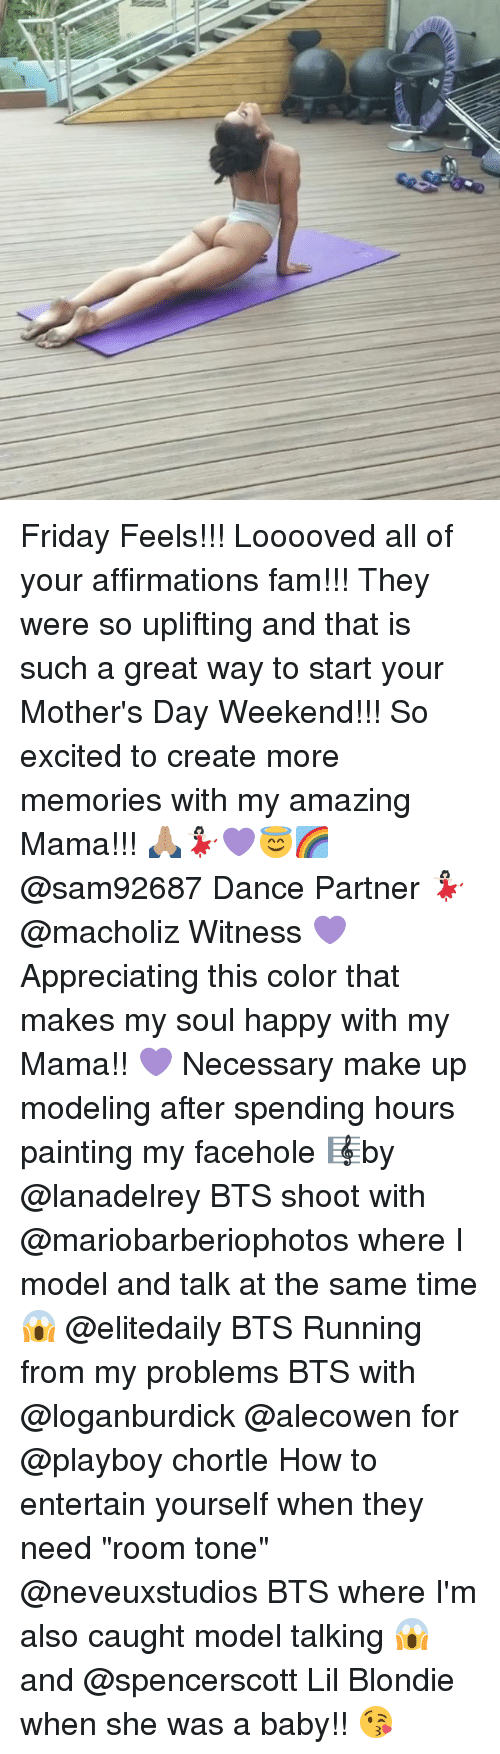 "Fam, Friday, and Memes: Friday Feels!!! Looooved all of your affirmations fam!!! They were so uplifting and that is such a great way to start your Mother's Day Weekend!!! So excited to create more memories with my amazing Mama!!! 🙏🏽💃🏻💜😇🌈 @sam92687 Dance Partner 💃🏻 @macholiz Witness 💜Appreciating this color that makes my soul happy with my Mama!! 💜 Necessary make up modeling after spending hours painting my facehole 🎼by @lanadelrey BTS shoot with @mariobarberiophotos where I model and talk at the same time 😱 @elitedaily BTS Running from my problems BTS with @loganburdick @alecowen for @playboy chortle How to entertain yourself when they need ""room tone"" @neveuxstudios BTS where I'm also caught model talking 😱 and @spencerscott Lil Blondie when she was a baby!! 😘"